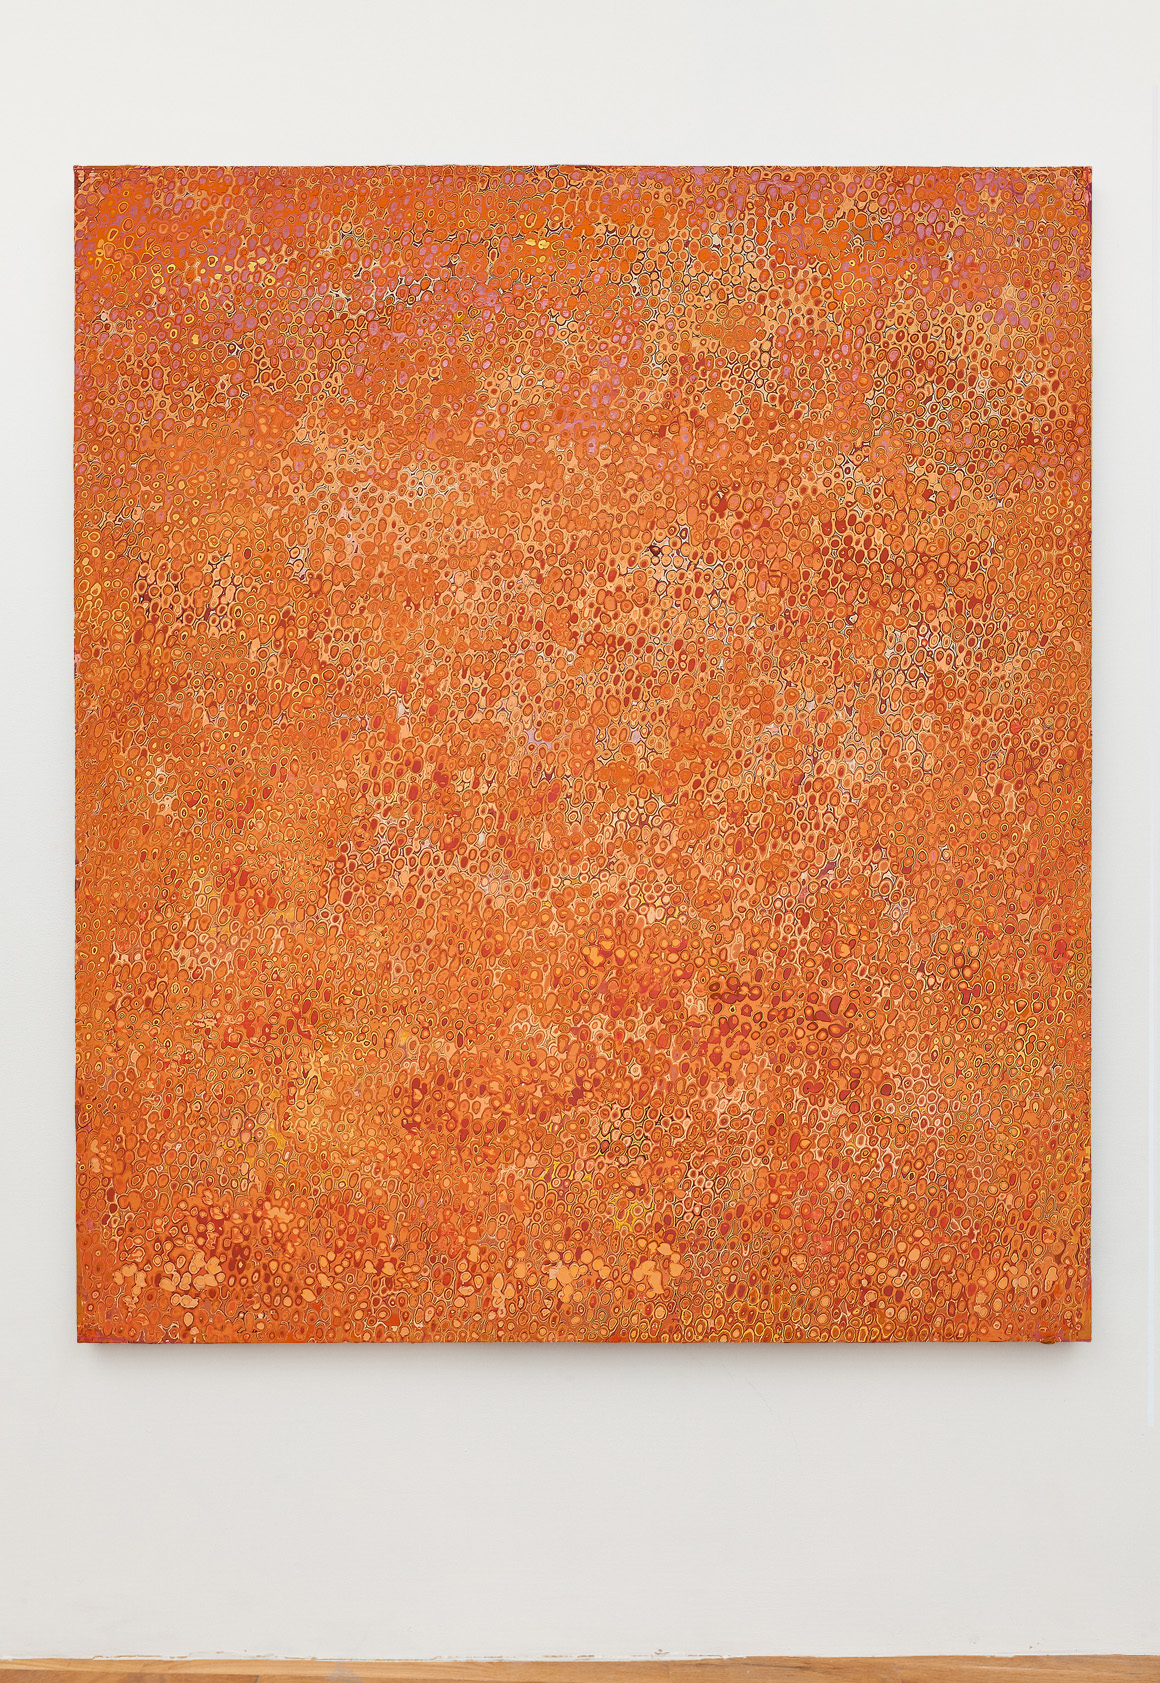 "<p><span class=""name"">Andrew Jensdotter</span><br><em>Orange 70</em><span class='media'>Carved latex on canvas</span>80 x 68 in (203.2 x 172.7 cm)<br>2018<br></p>"